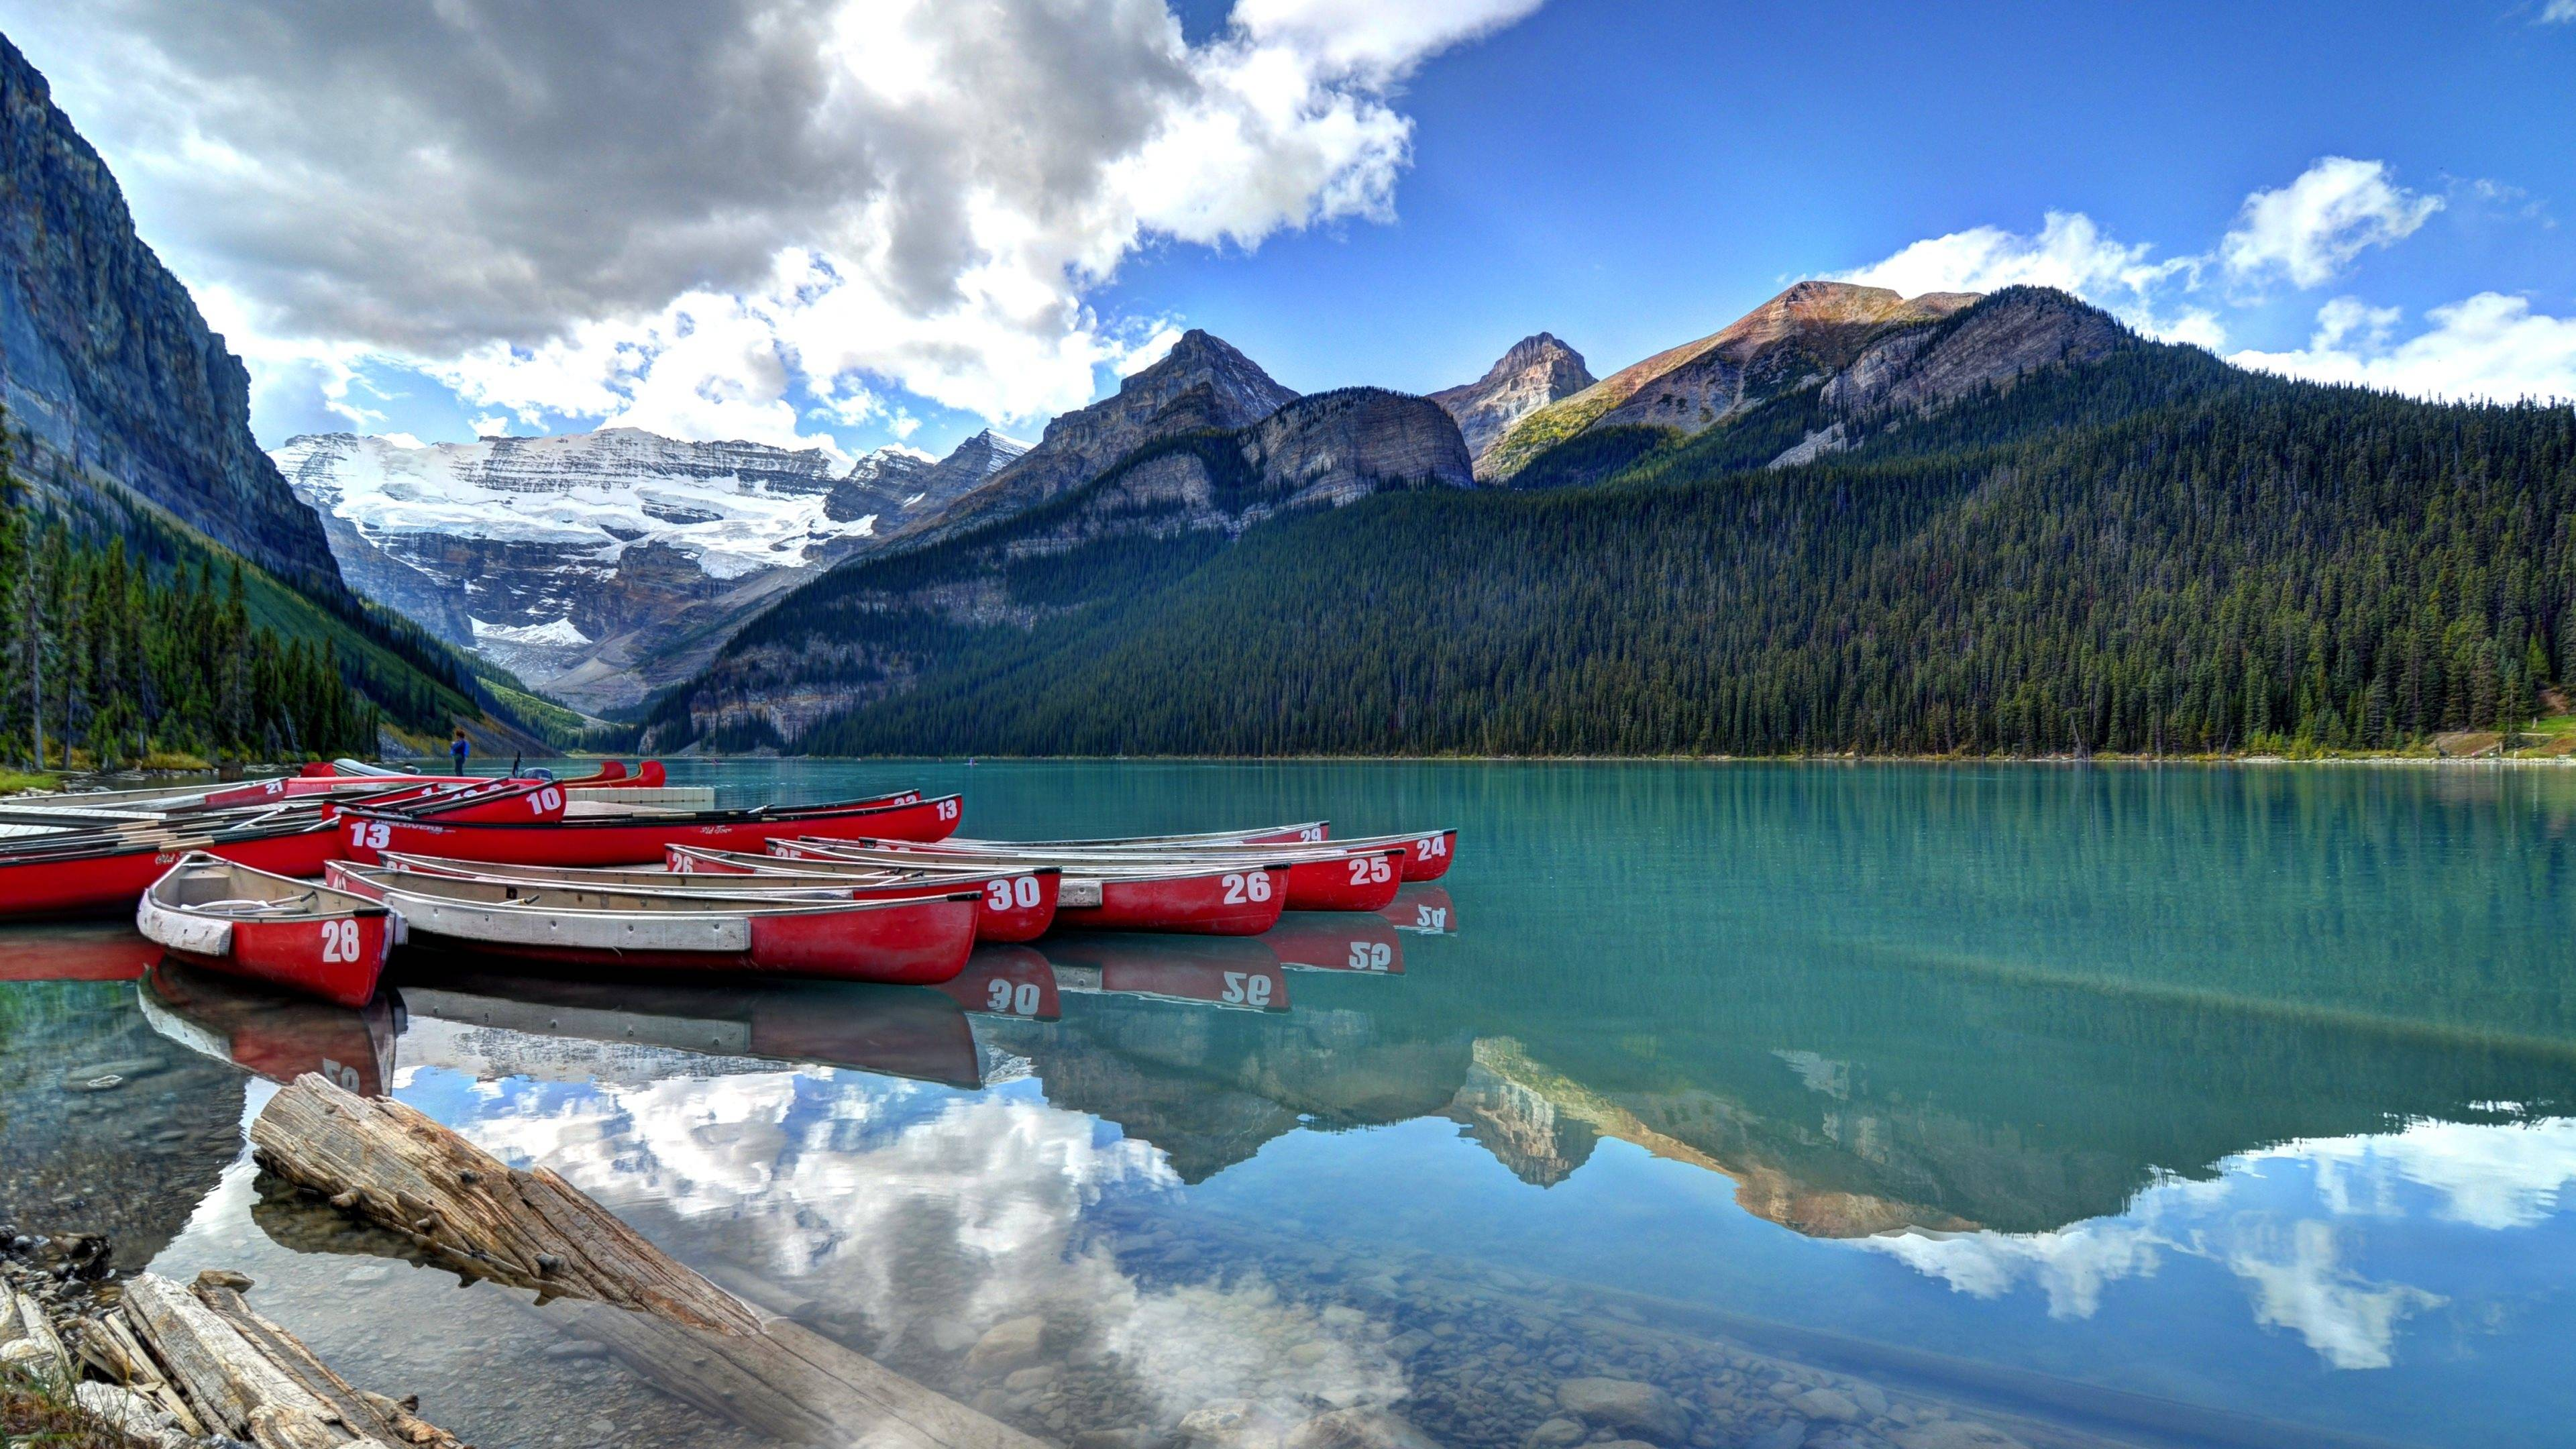 Lake Louise Computer Wallpapers, Desktop Backgrounds 3840x2160 Id ..